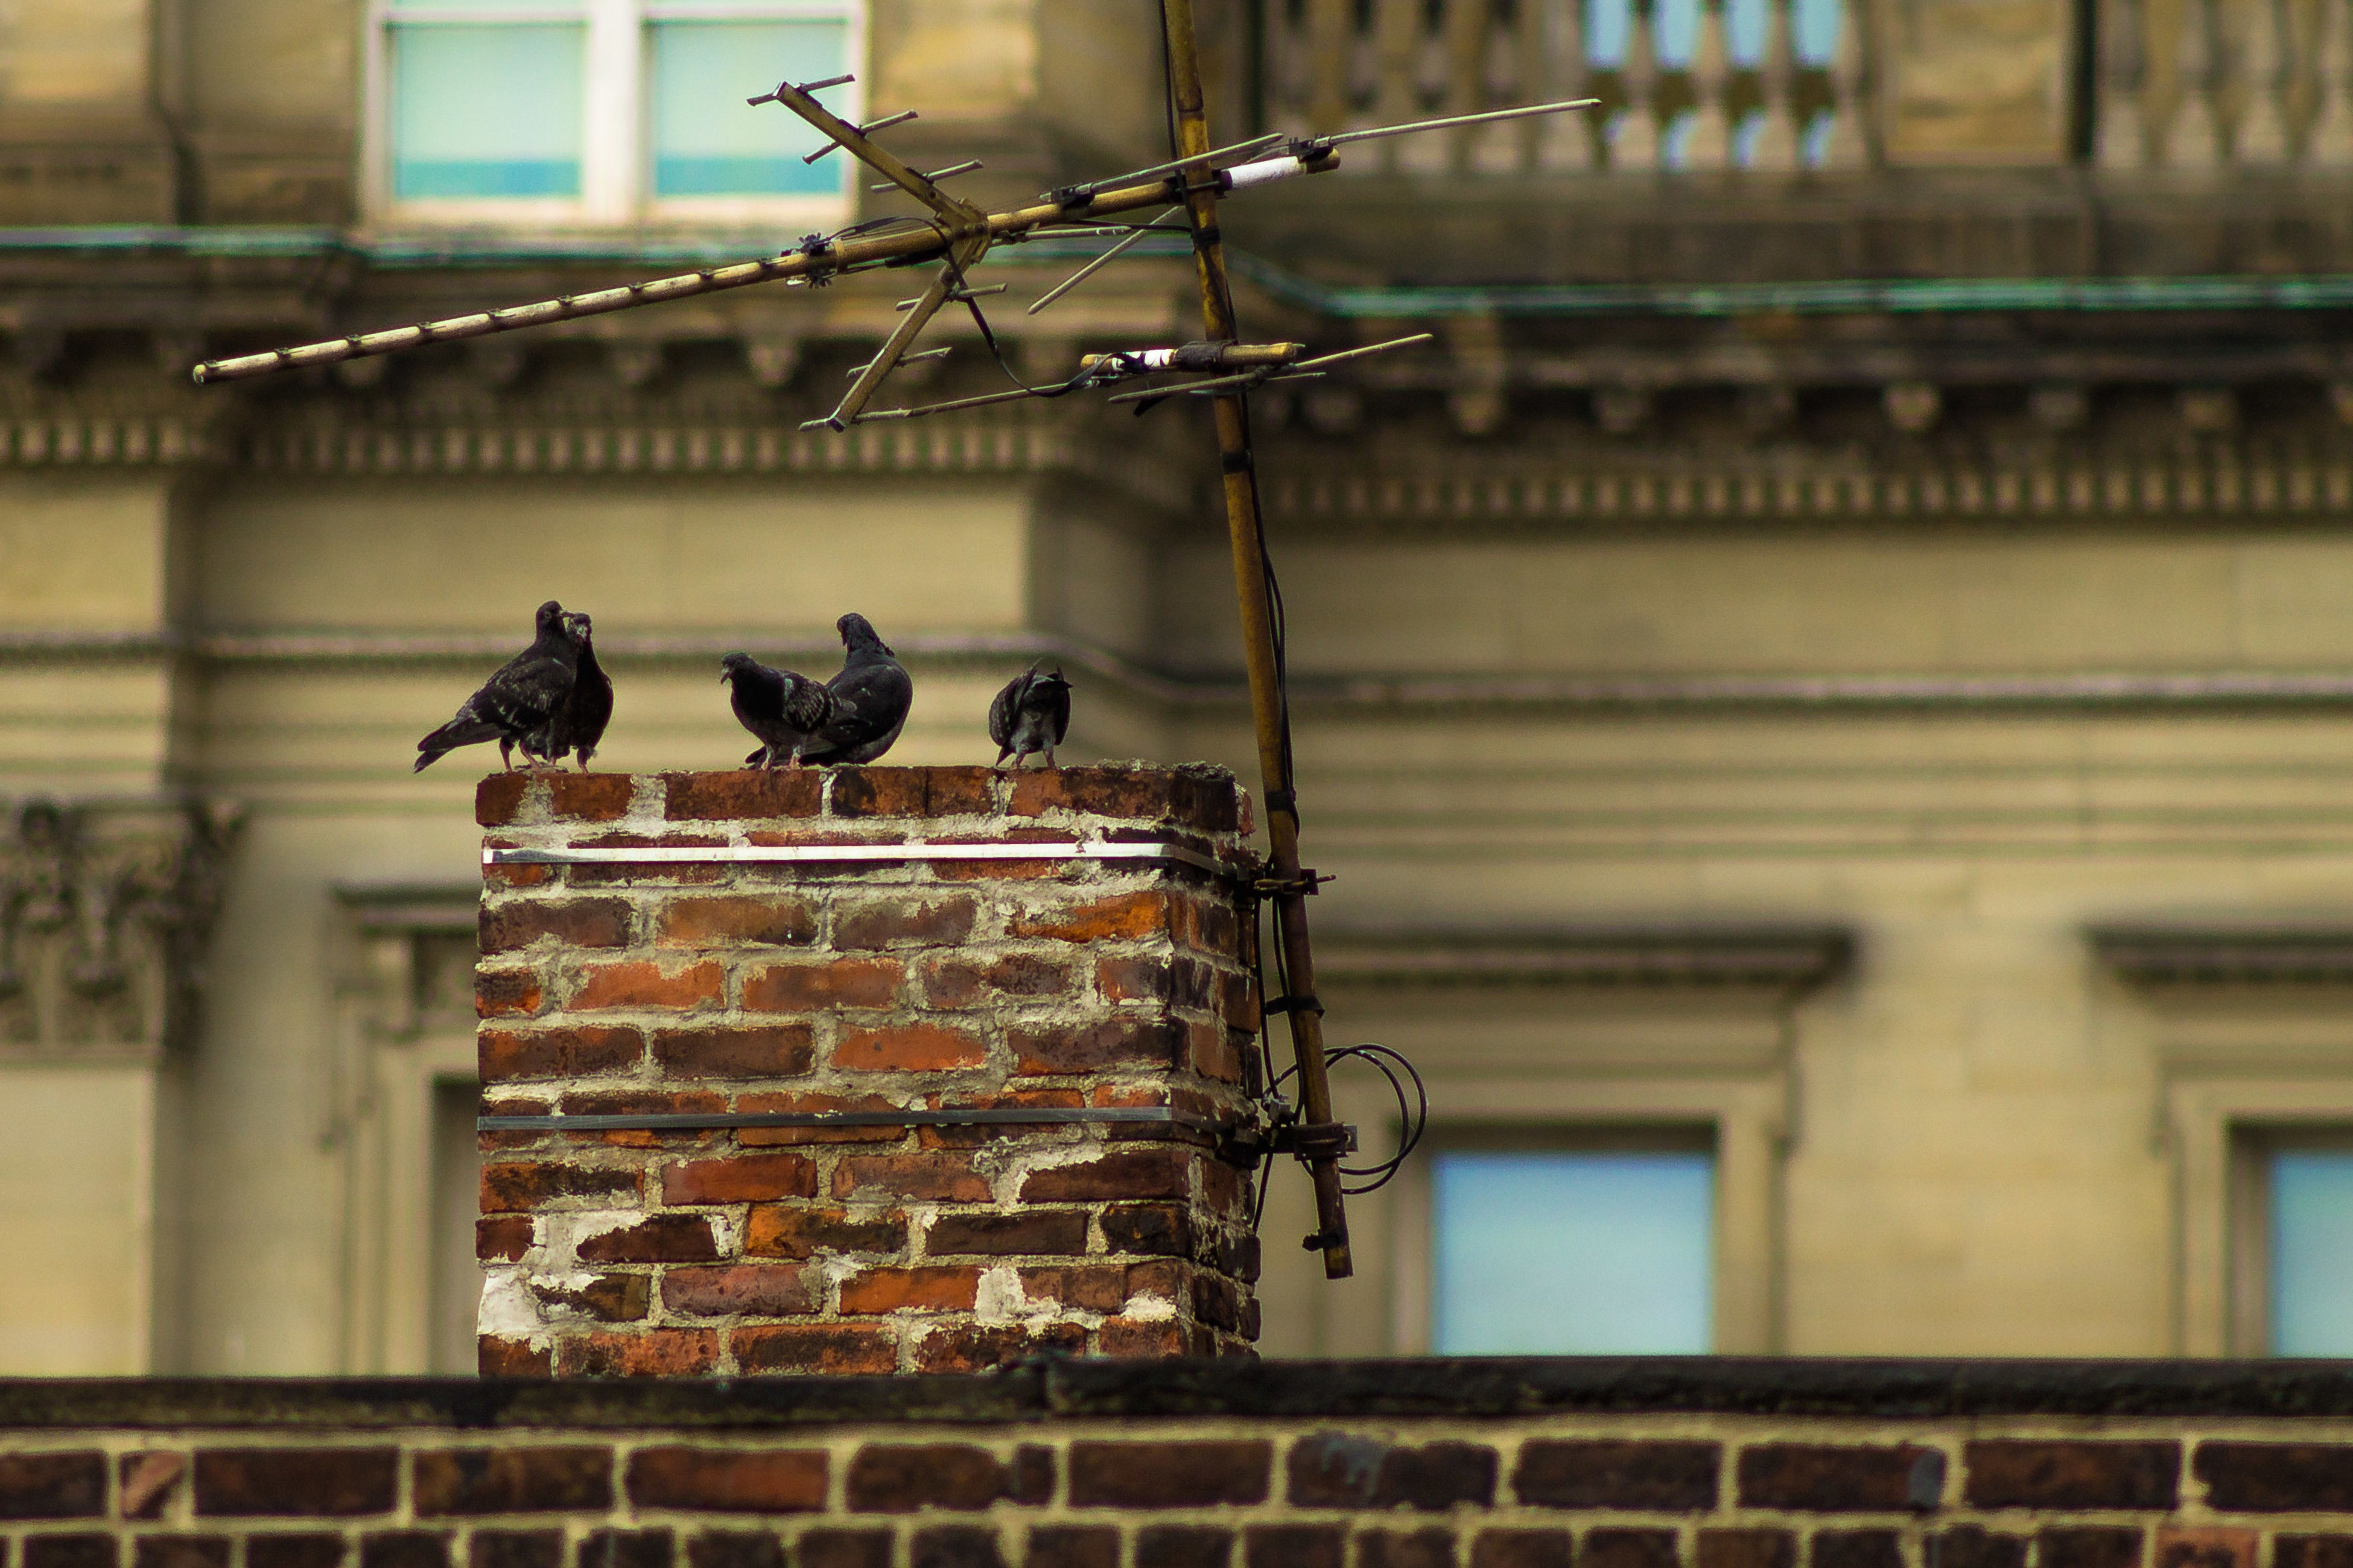 animal themes, animals in the wild, building exterior, built structure, architecture, bird, one animal, wildlife, focus on foreground, perching, outdoors, close-up, day, railing, no people, pigeon, window, metal, old, building